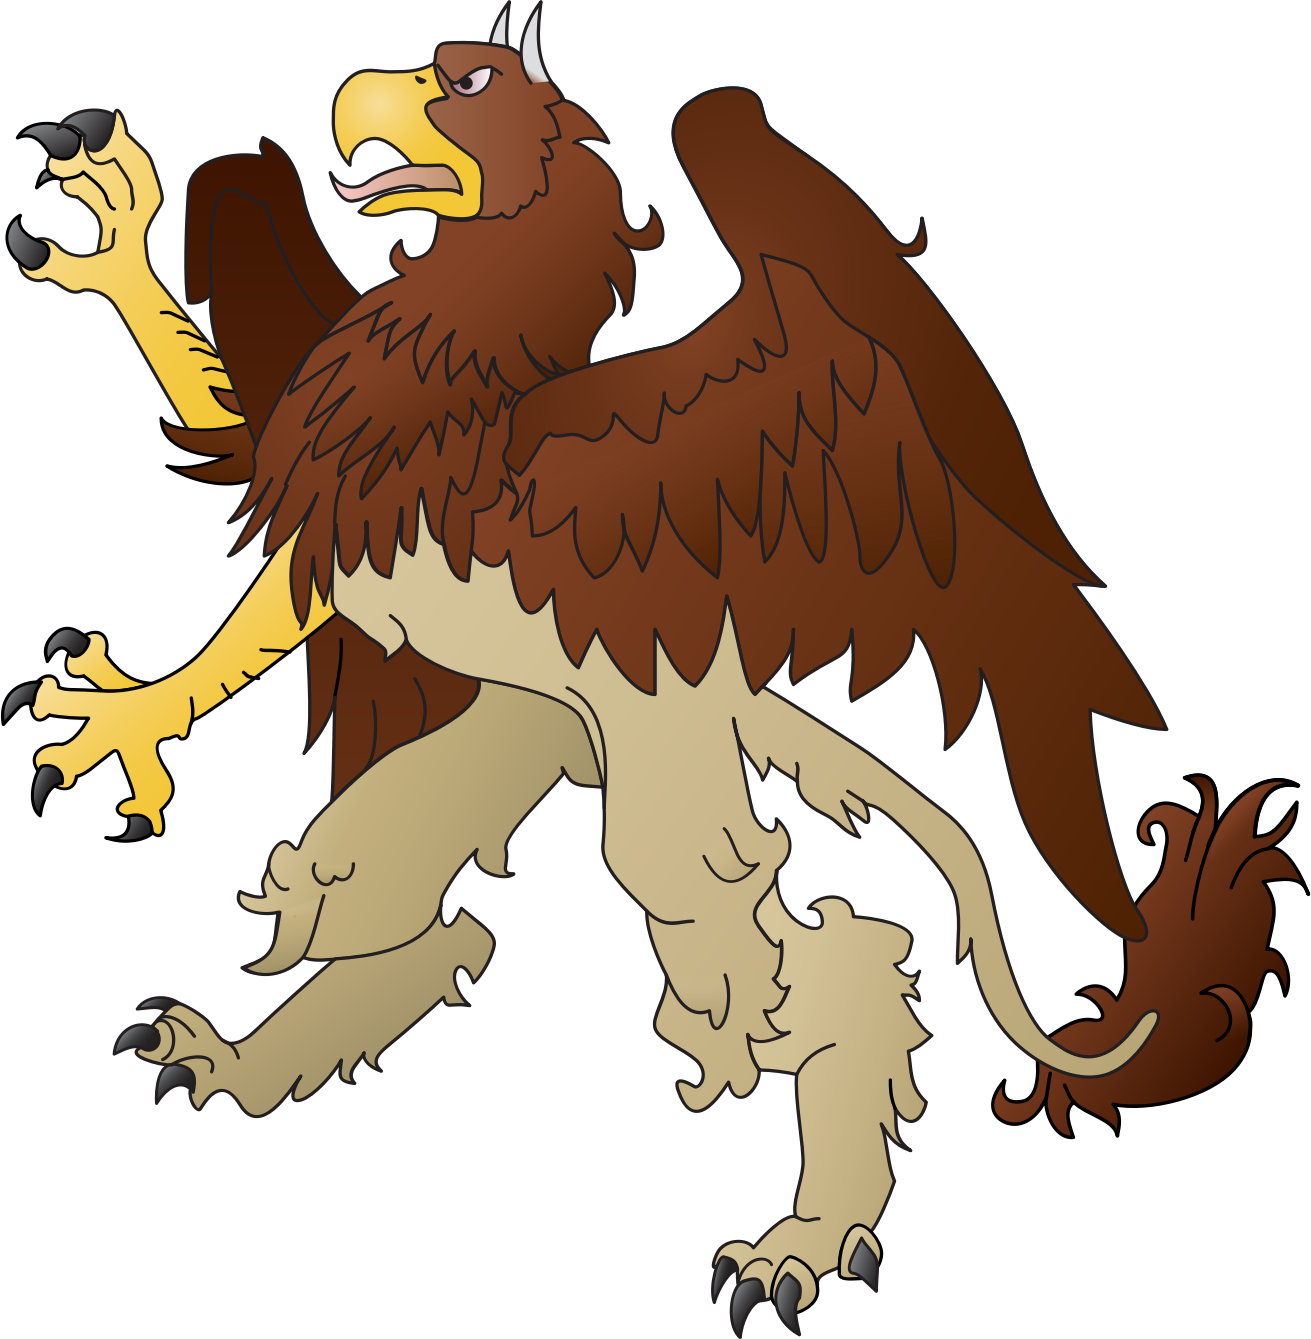 Griffin Free Png Image PNG Image - Griffin PNG